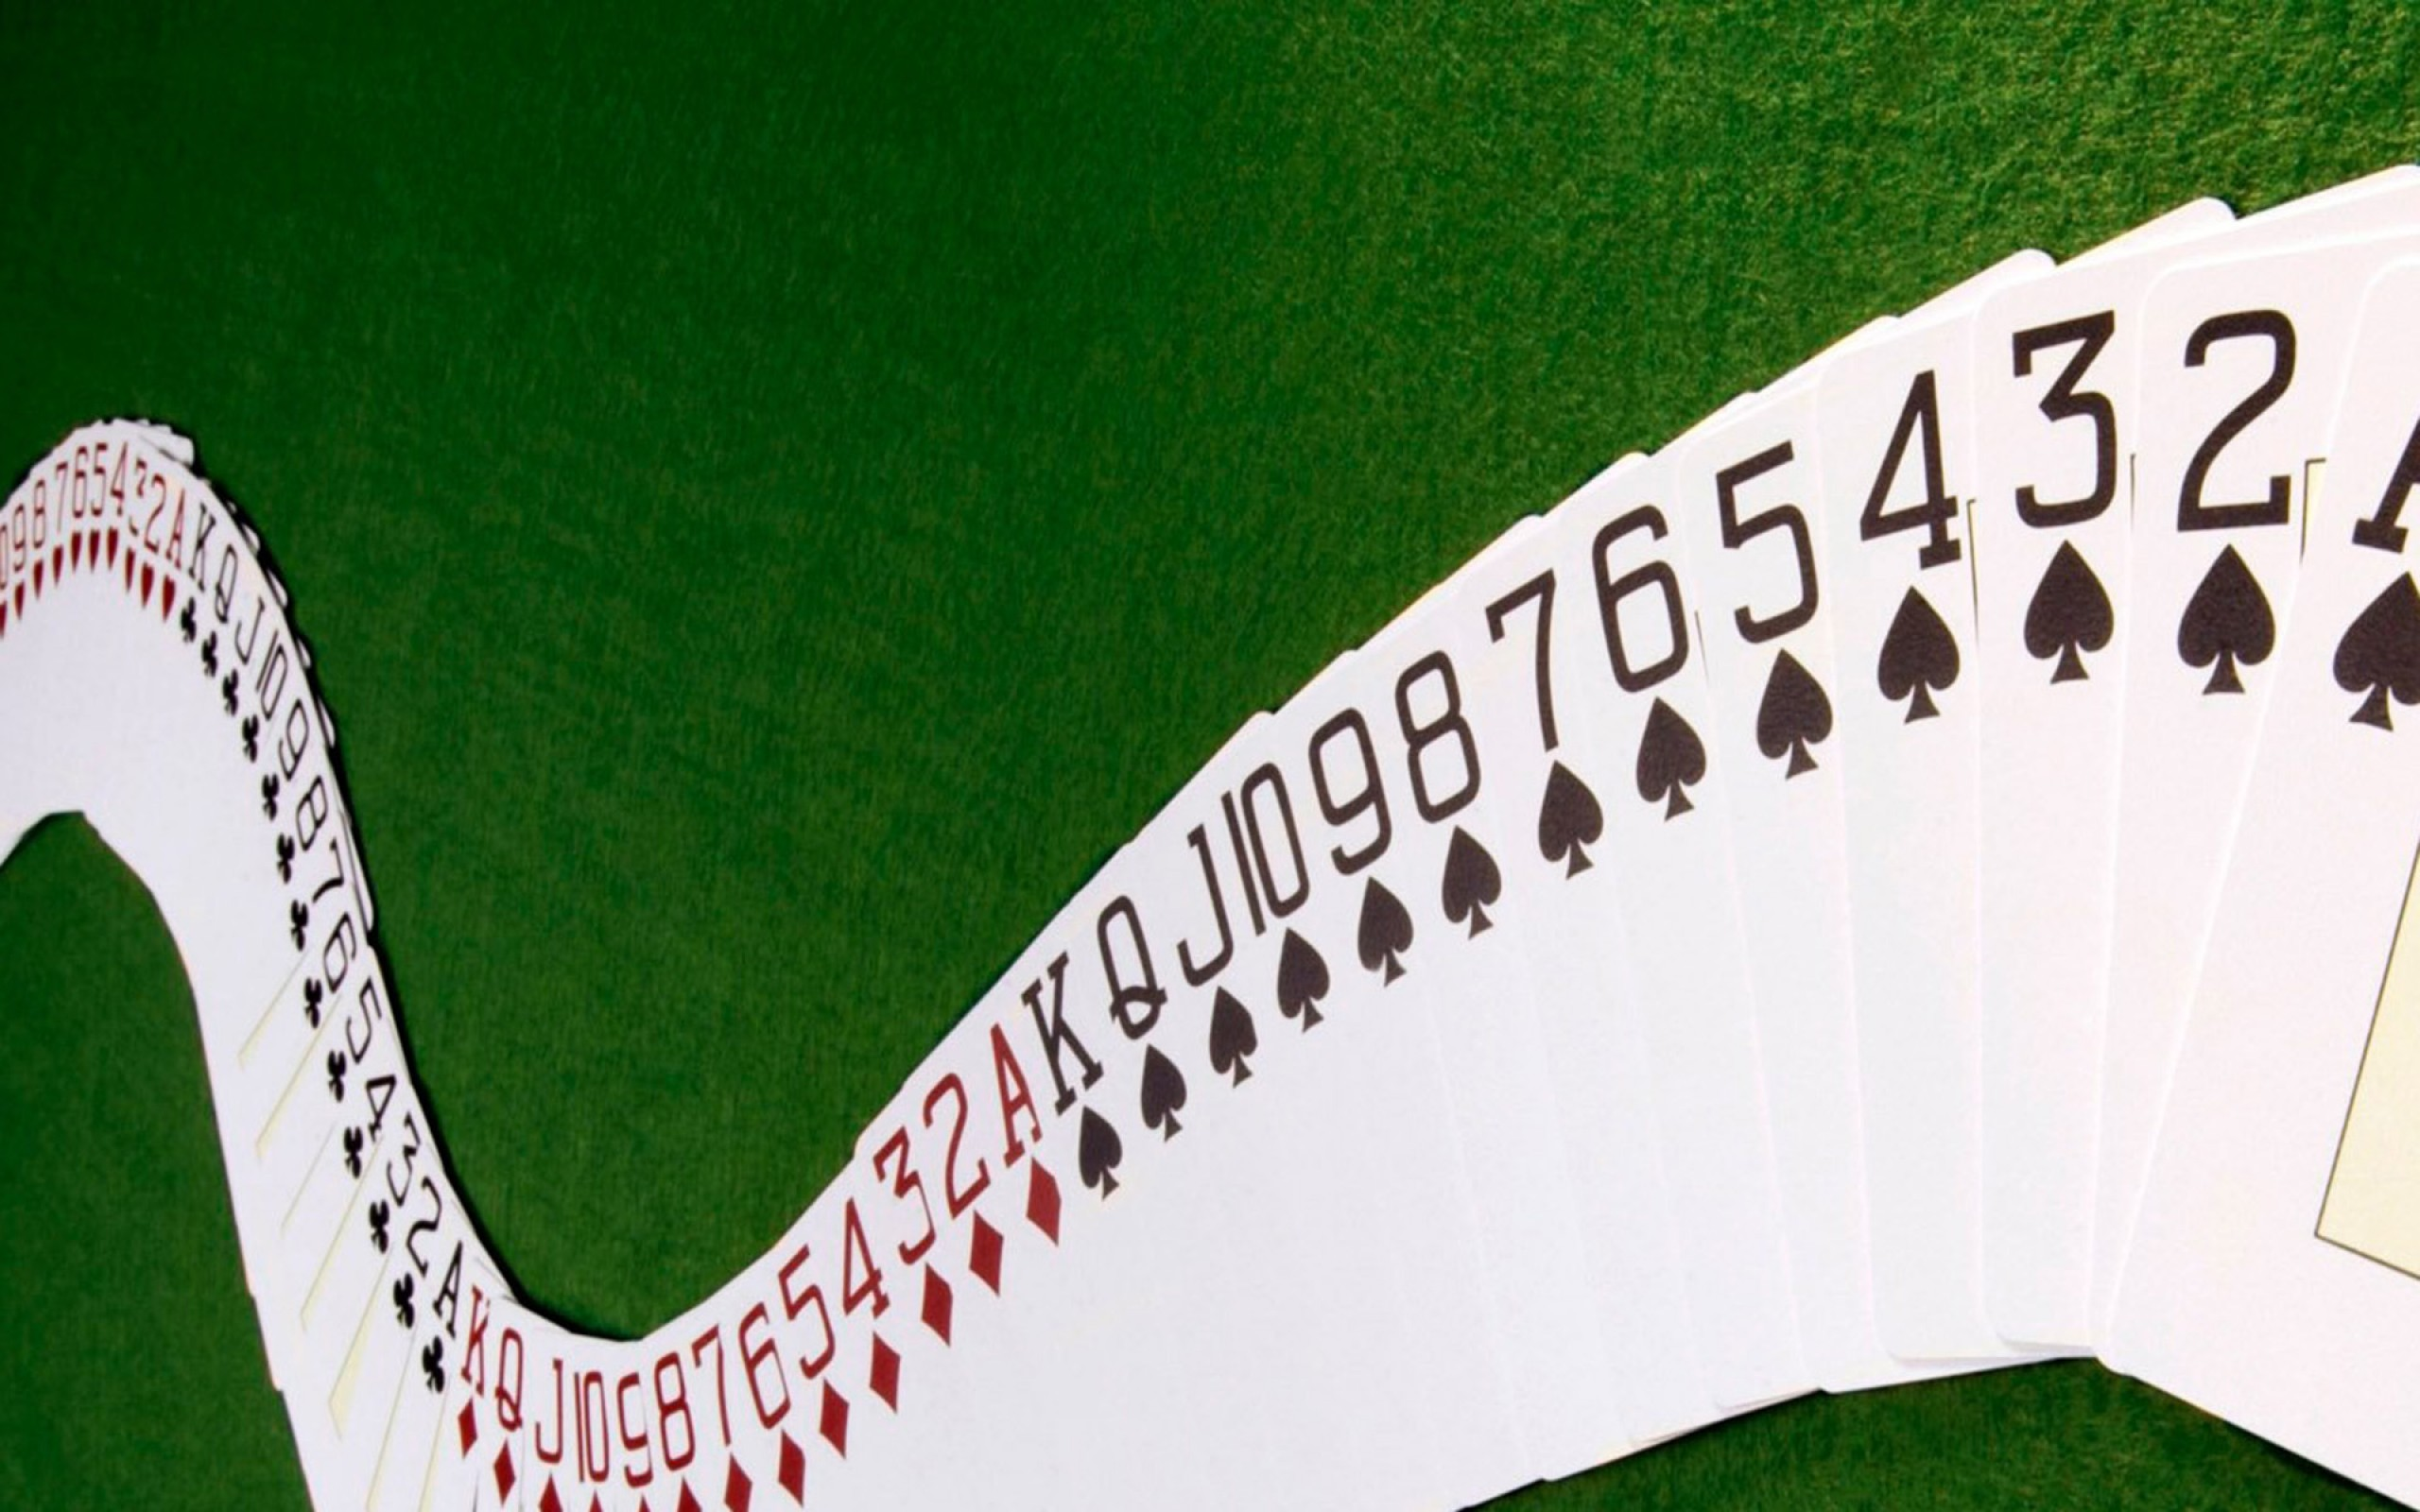 playing cards green background hd wallpaper picture image